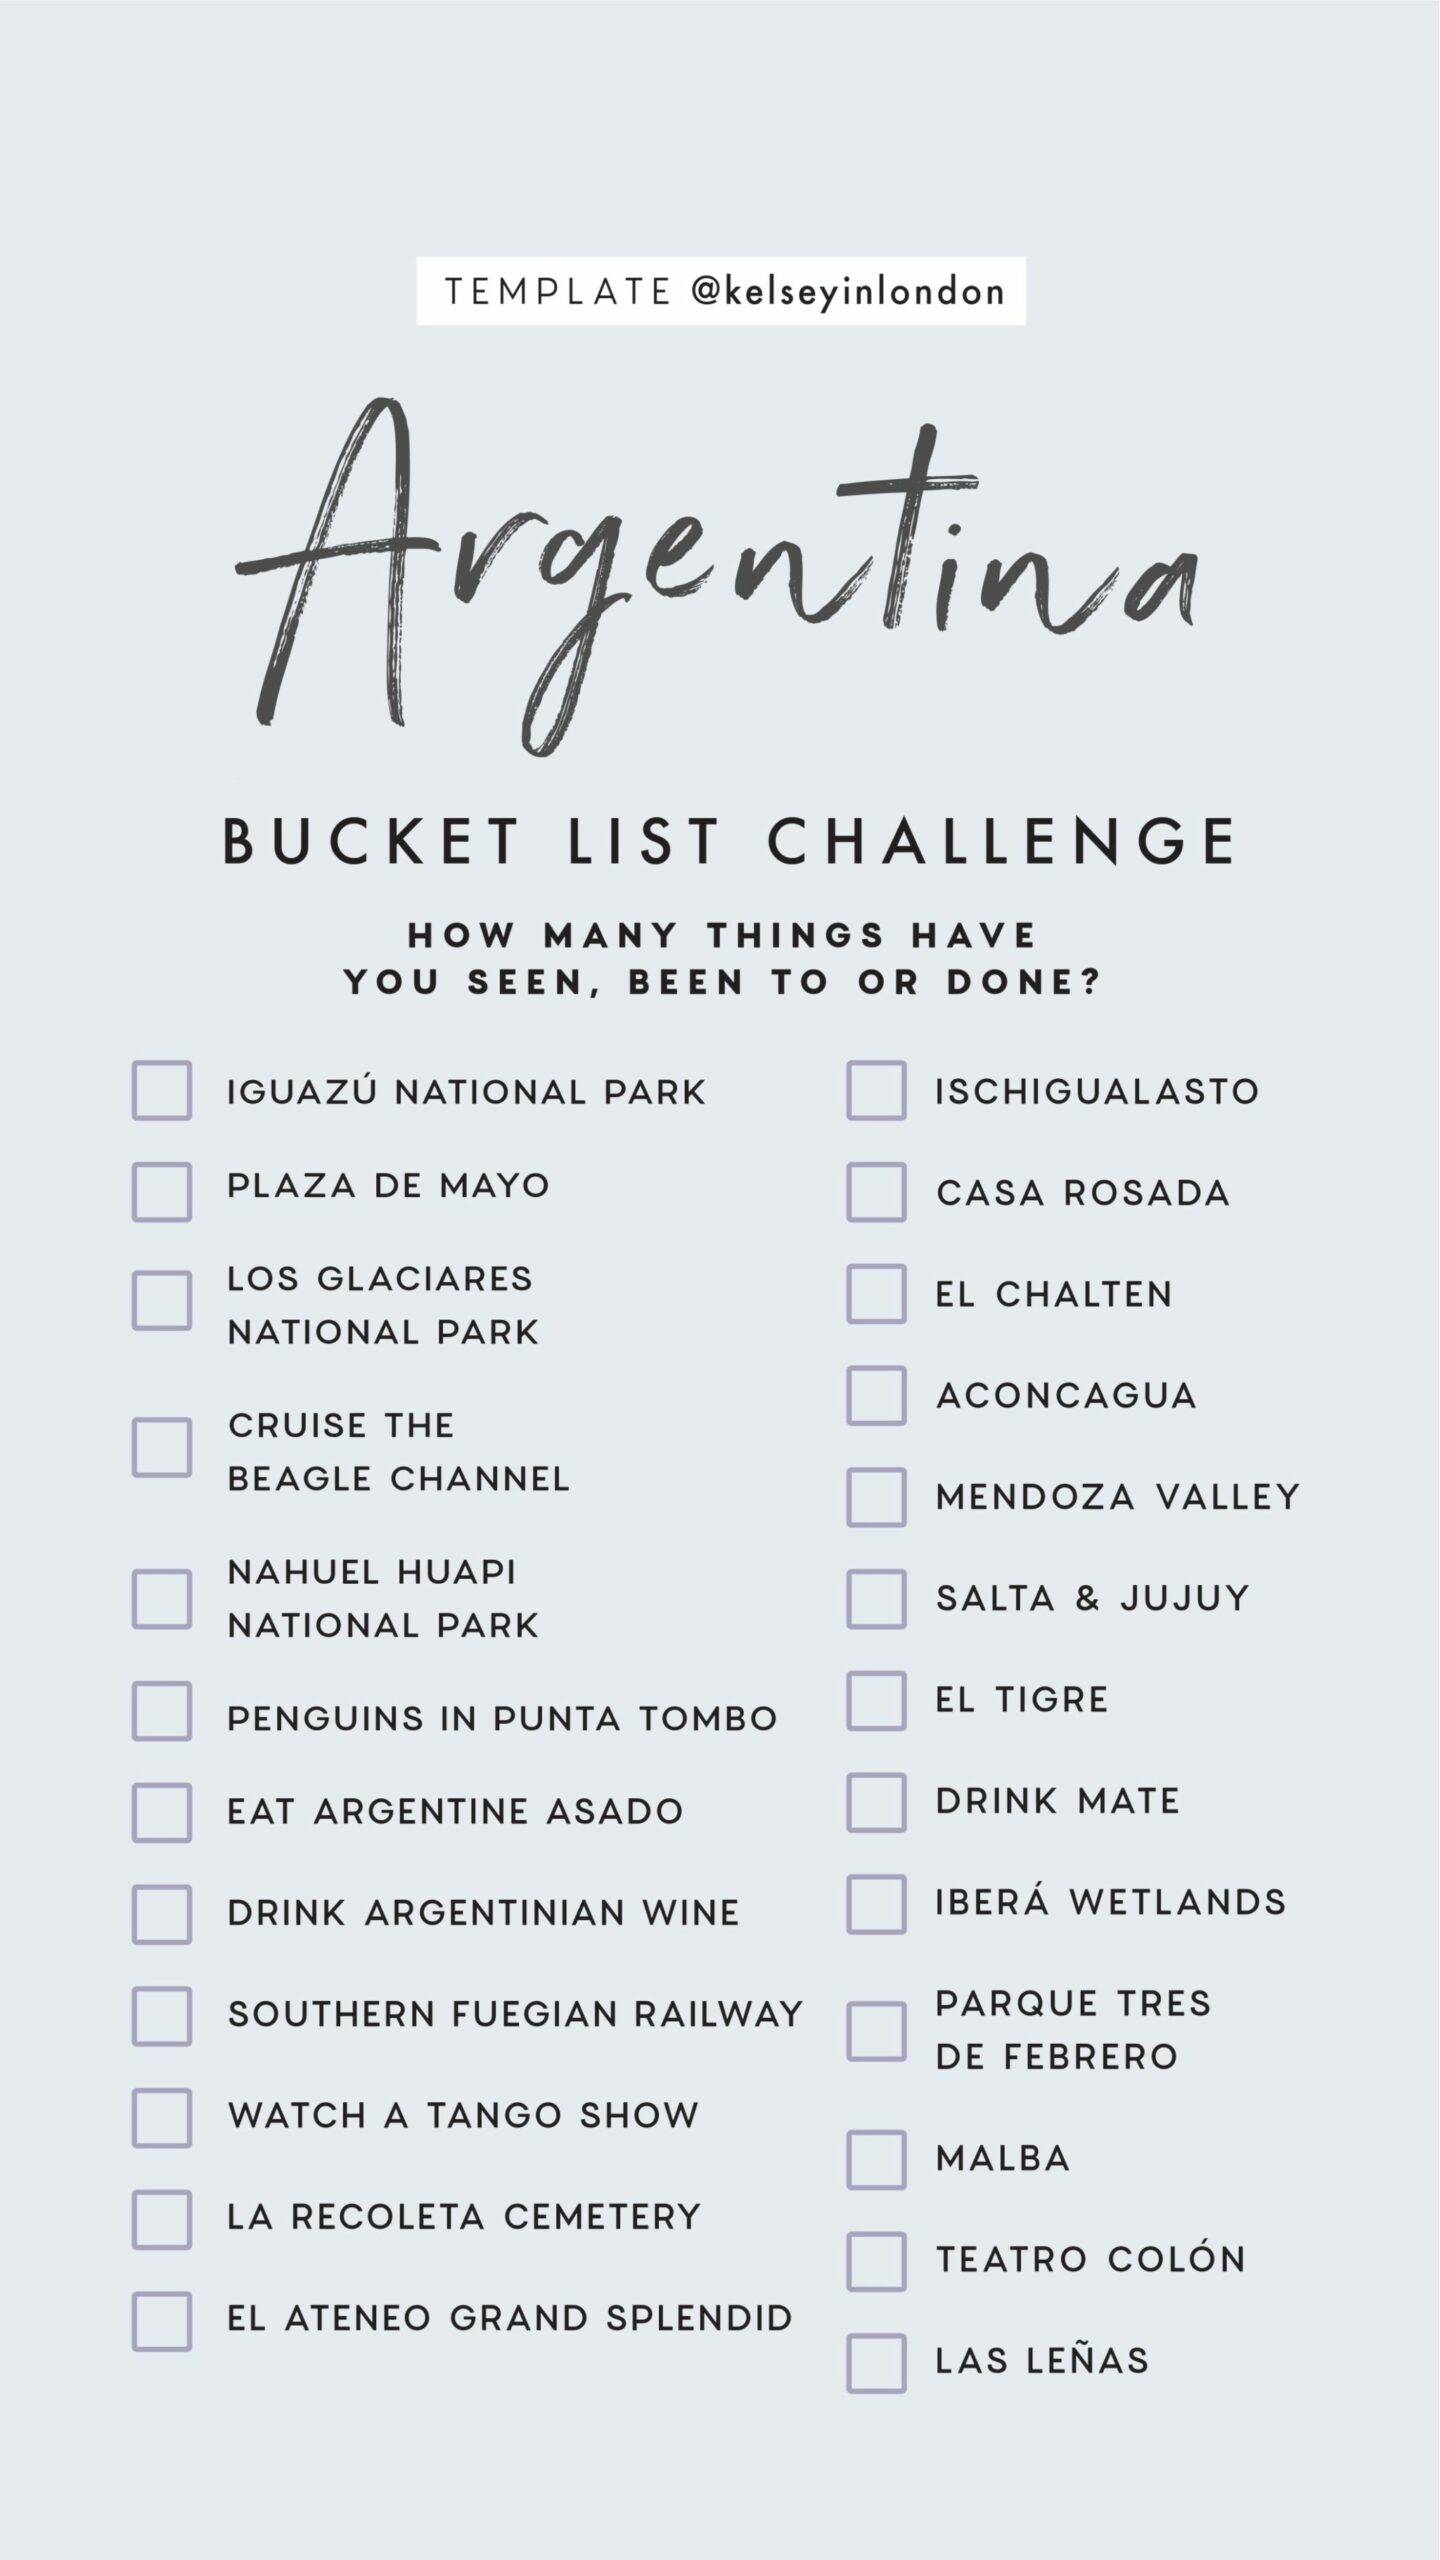 Top things to do in Argentina Bucket list Instagram Story Template kelseyinlondon Kelsey Heinrichs What to do in Argentina Where to go in Argentina top places in Argentina